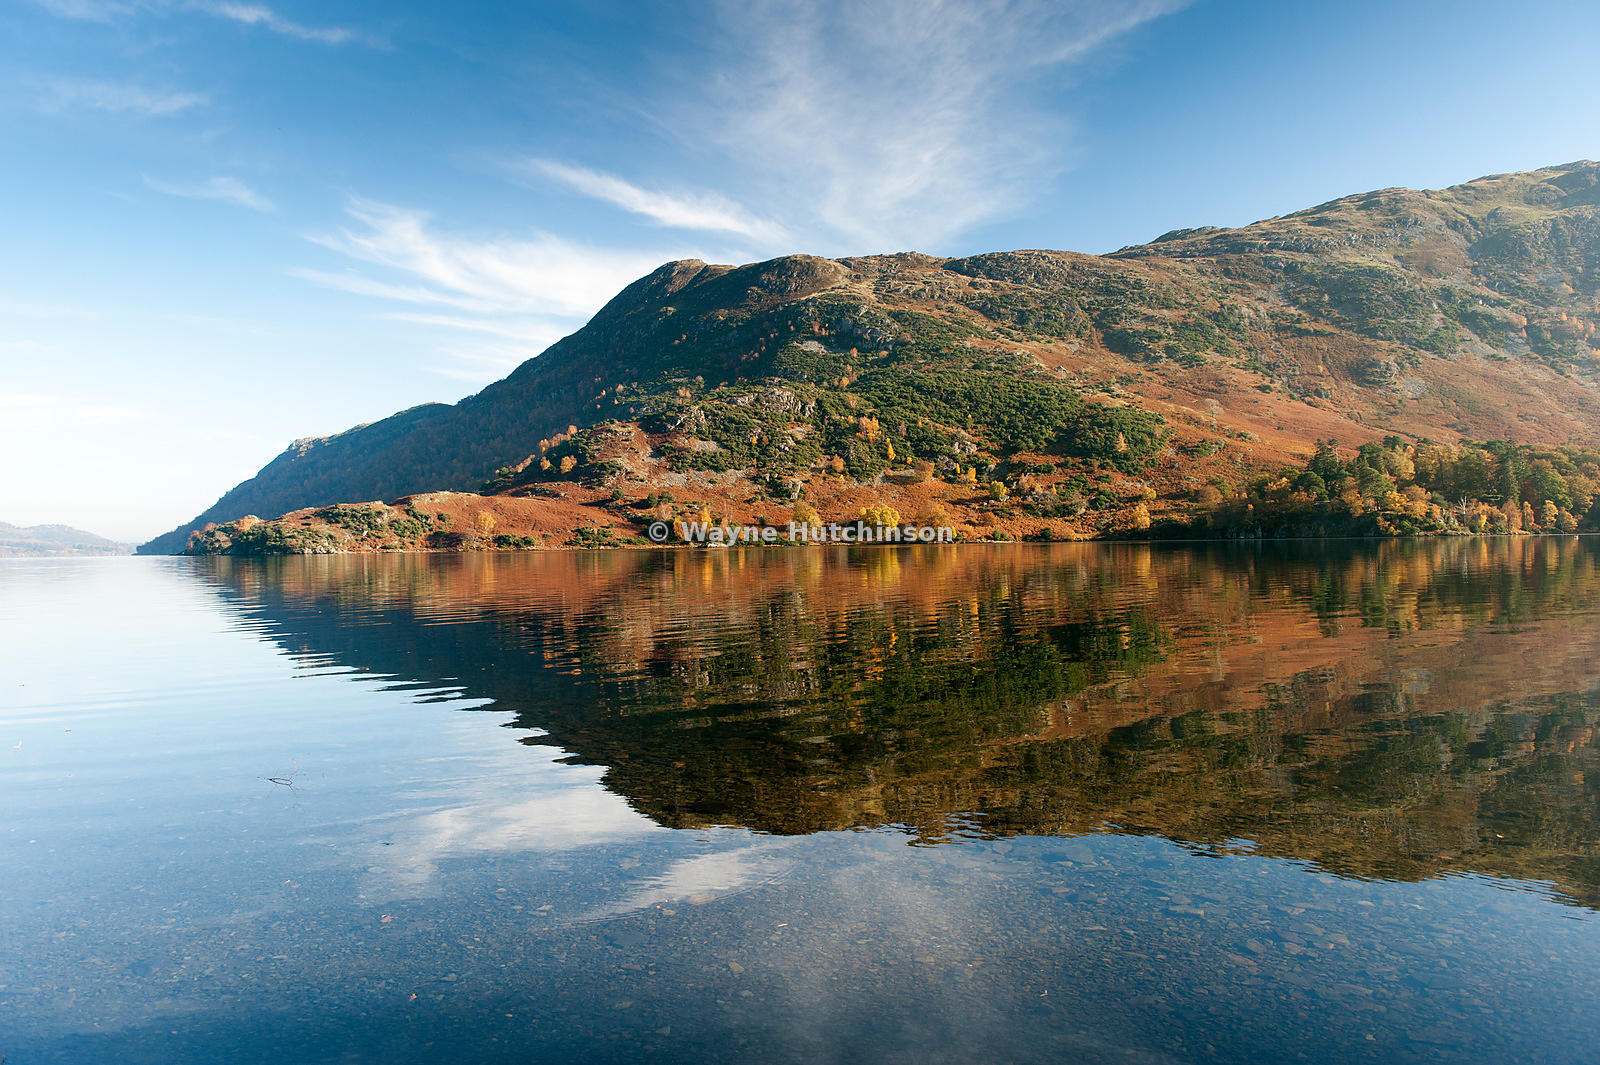 Silver Point on Ullswater seen from Glencoyne on an autumns morning, Lake District National Park, UK.